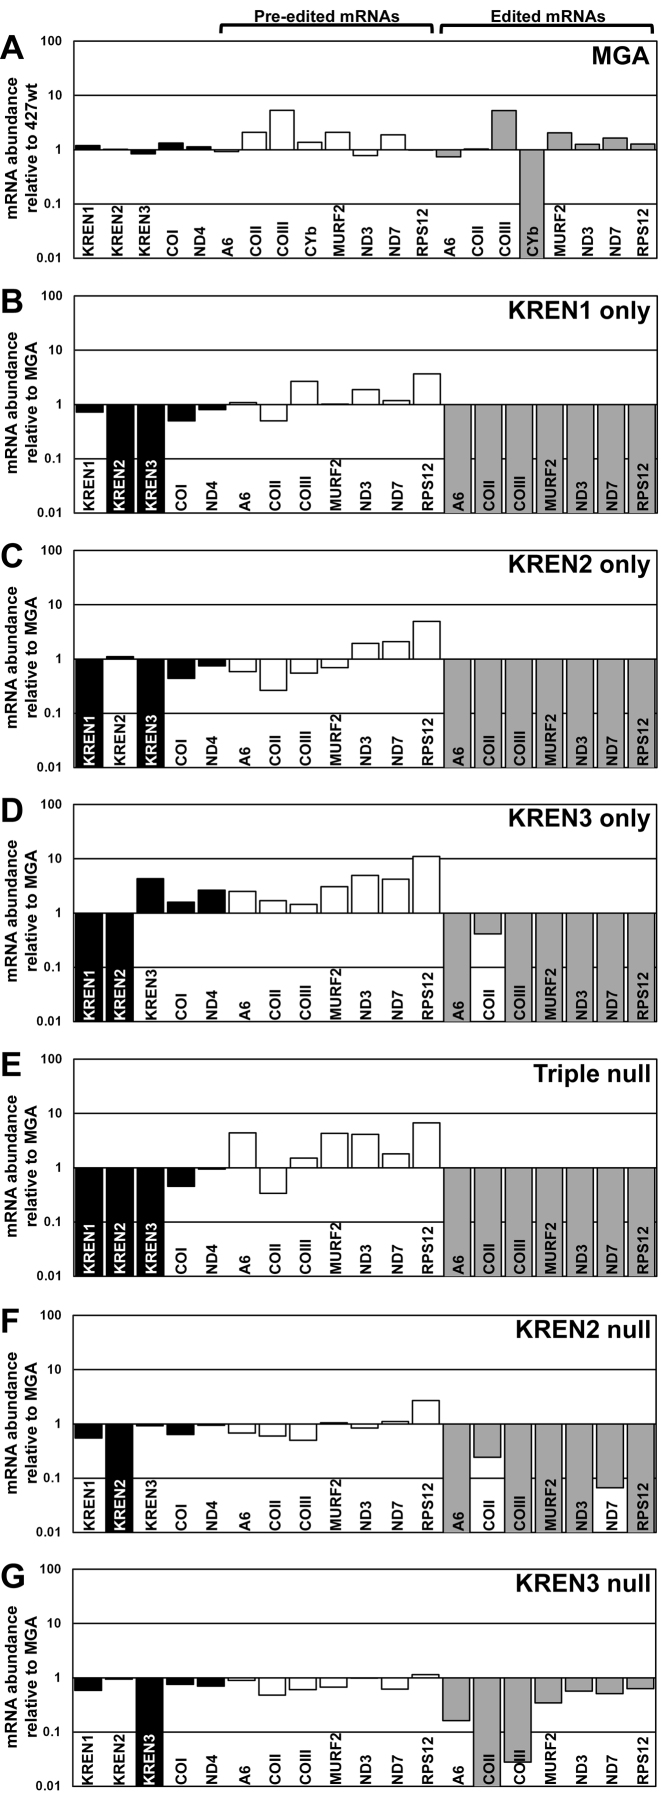 Real-time <t>PCR</t> analysis shows loss of endonuclease expression and associated loss of editing. Relative RNA abundance is shown for KREN1, KREN2, KREN3 and never-edited mRNAs COI and ND4 (black bars), pre-edited mRNAs (white bars), and edited mRNAs (gray bars). For each target <t>amplicon,</t> the relative change in RNA abundance was determined by using telomerase reverse transcriptase (TERT) mRNA as an internal control, with each cell line compared relative to either 427wt or MGA control as indicated. ( A ) MGA cells have no large changes in mRNA abundance relative to 427wt, with the exception of the complete loss of CYb editing. As the remaining cell lines are compared to MGA, CYb is excluded from those analyses. ( B ) KREN1 only cells have no detectable KREN2 or KREN3 mRNA, and a broad loss of RNA editing. ( C ) KREN2 only cells have no detectable KREN1 or KREN3 mRNA, and a broad loss of RNA editing. ( D ) KREN3 only cells have no detectable KREN1 or KREN2 mRNA, and a broad loss of RNA editing, with COII editing notably retained. ( E ) Triple null cells have no detectable KREN1, KREN2, or KREN3 mRNA, and a broad loss of RNA editing. ( F ) KREN2 null cells have no detectable KREN2 mRNA, and a broad loss of RNA editing with some amount of COII and ND7 editing retained. ( G ) KREN3 null cells have no detectable KREN3 mRNA, and a loss of COII RNA editing with variable amounts of other edited mRNAs retained.